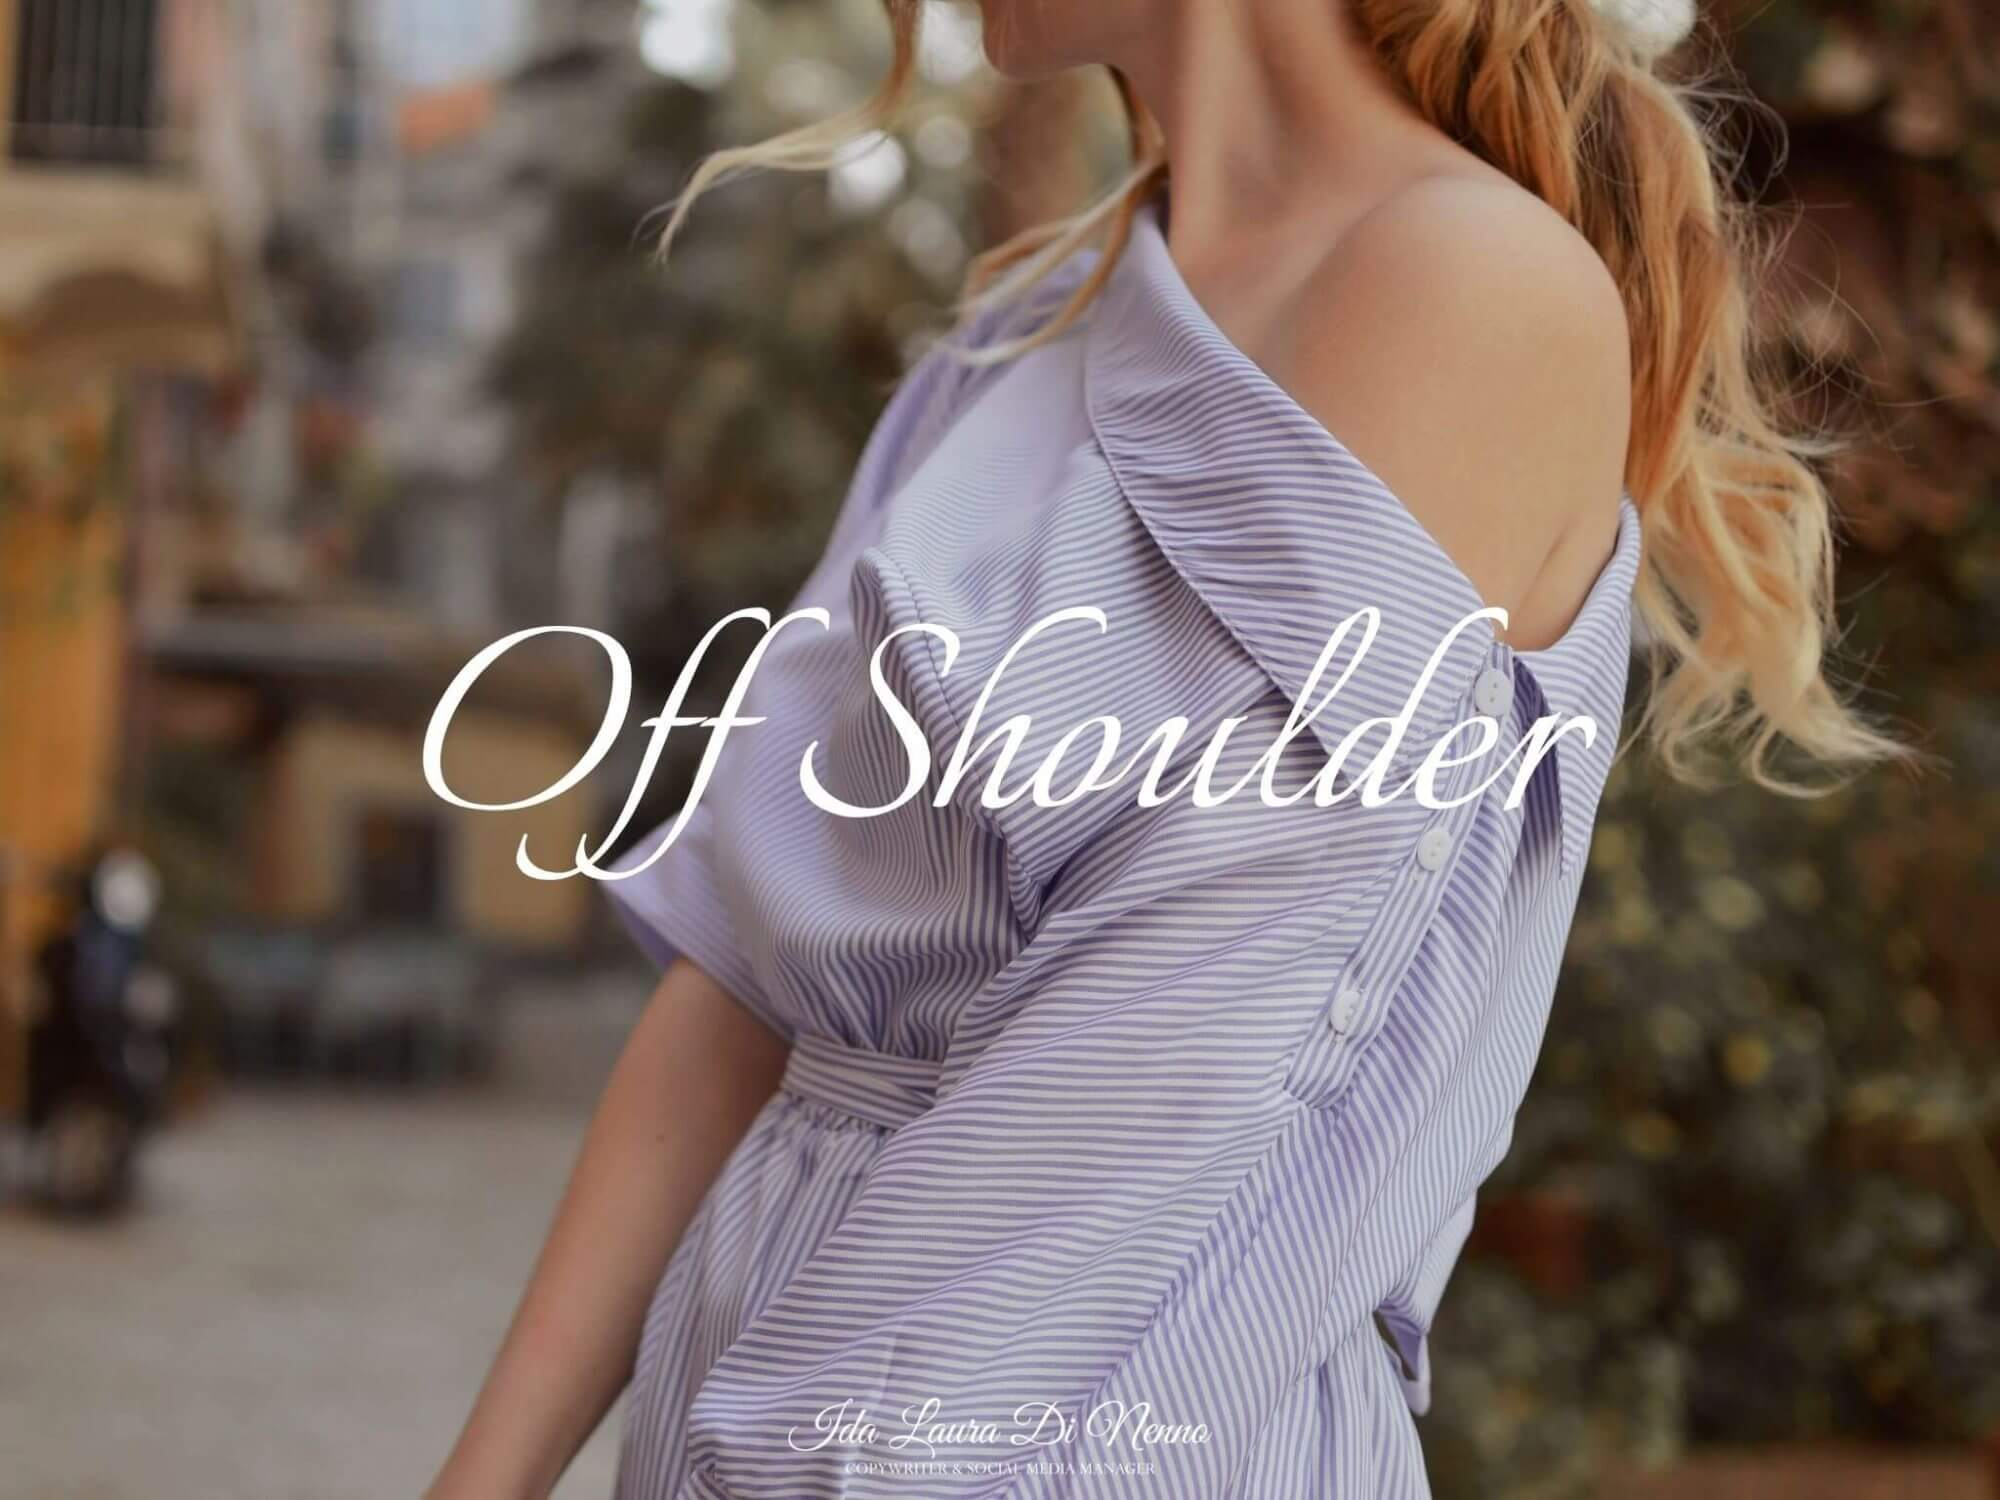 Off Shoulder: metti in mostra le spalle!